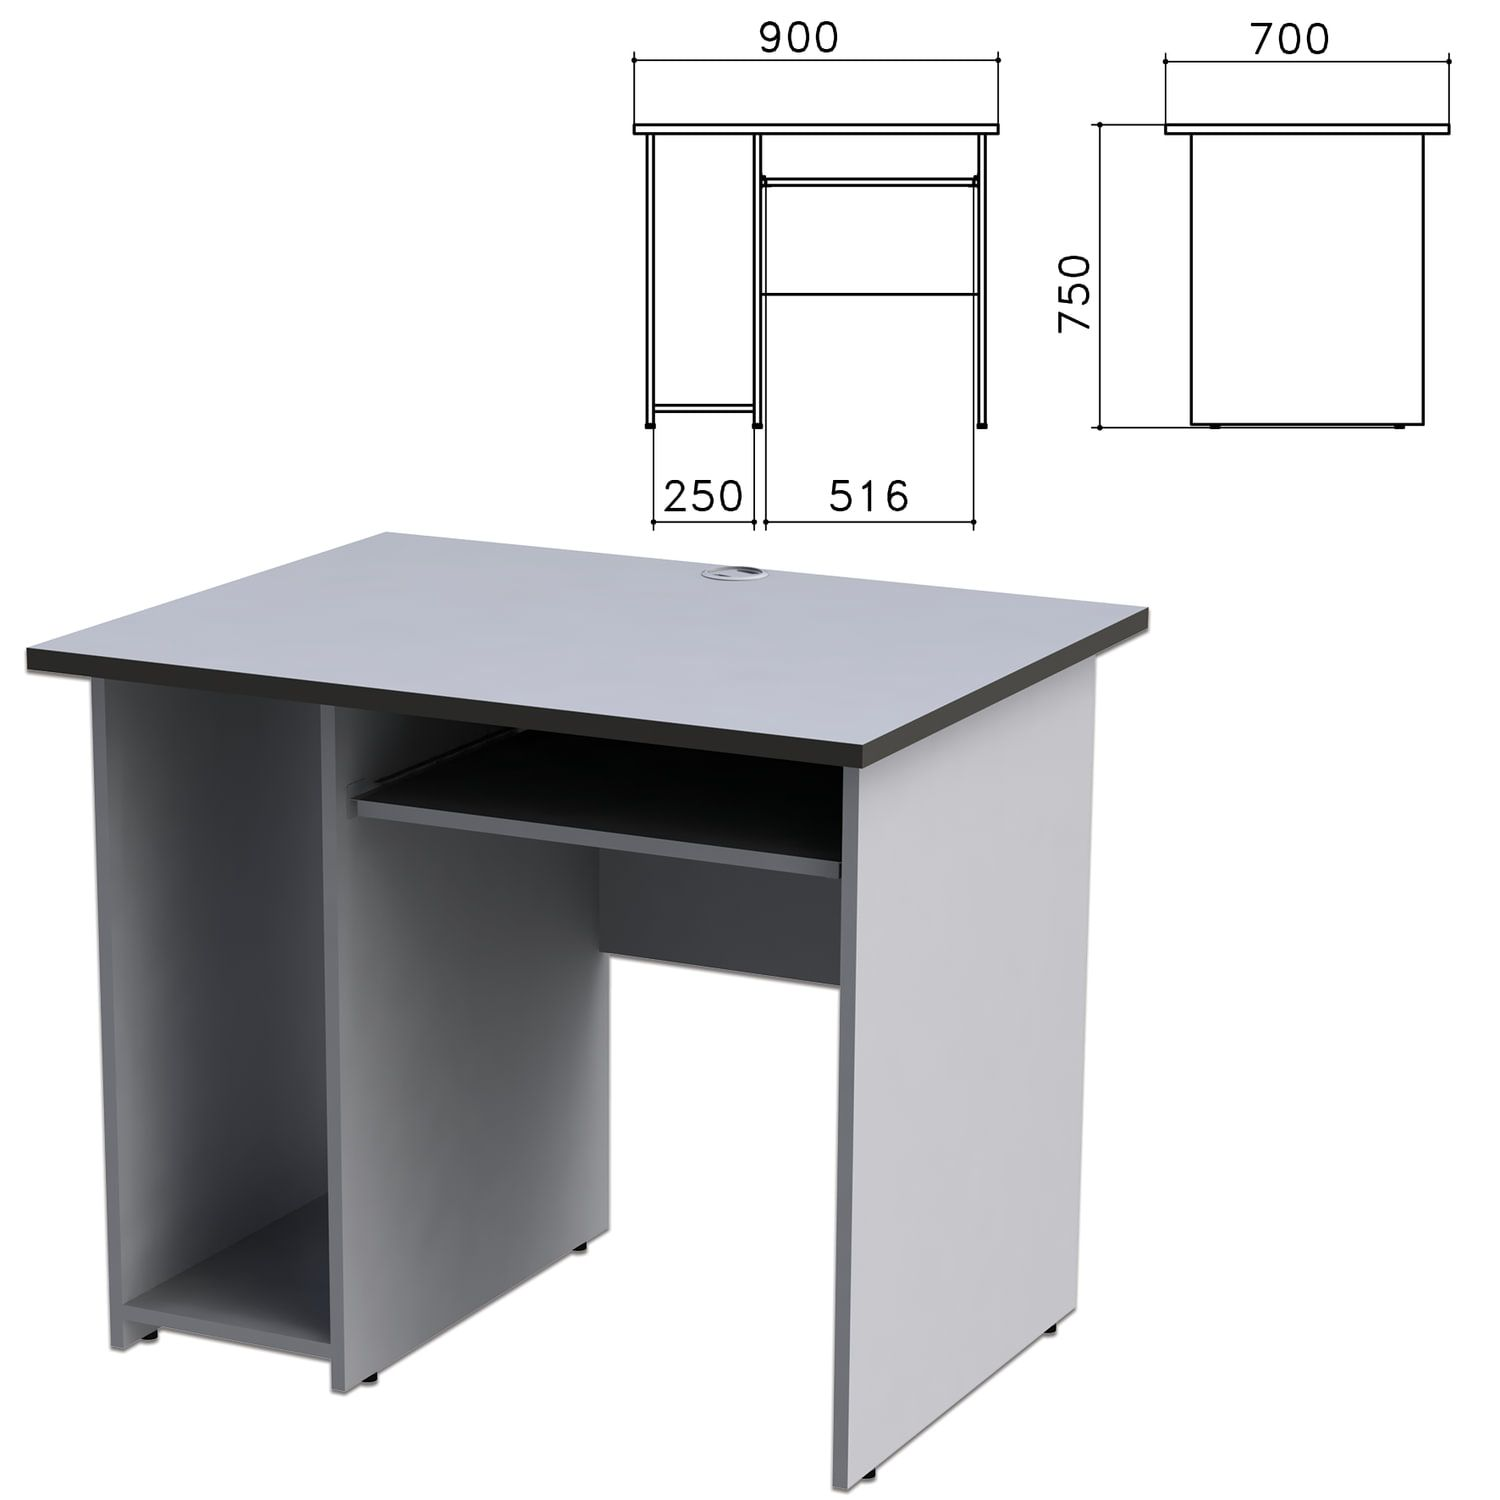 Monolith computer table, 900 x700 x750 mm, gray color